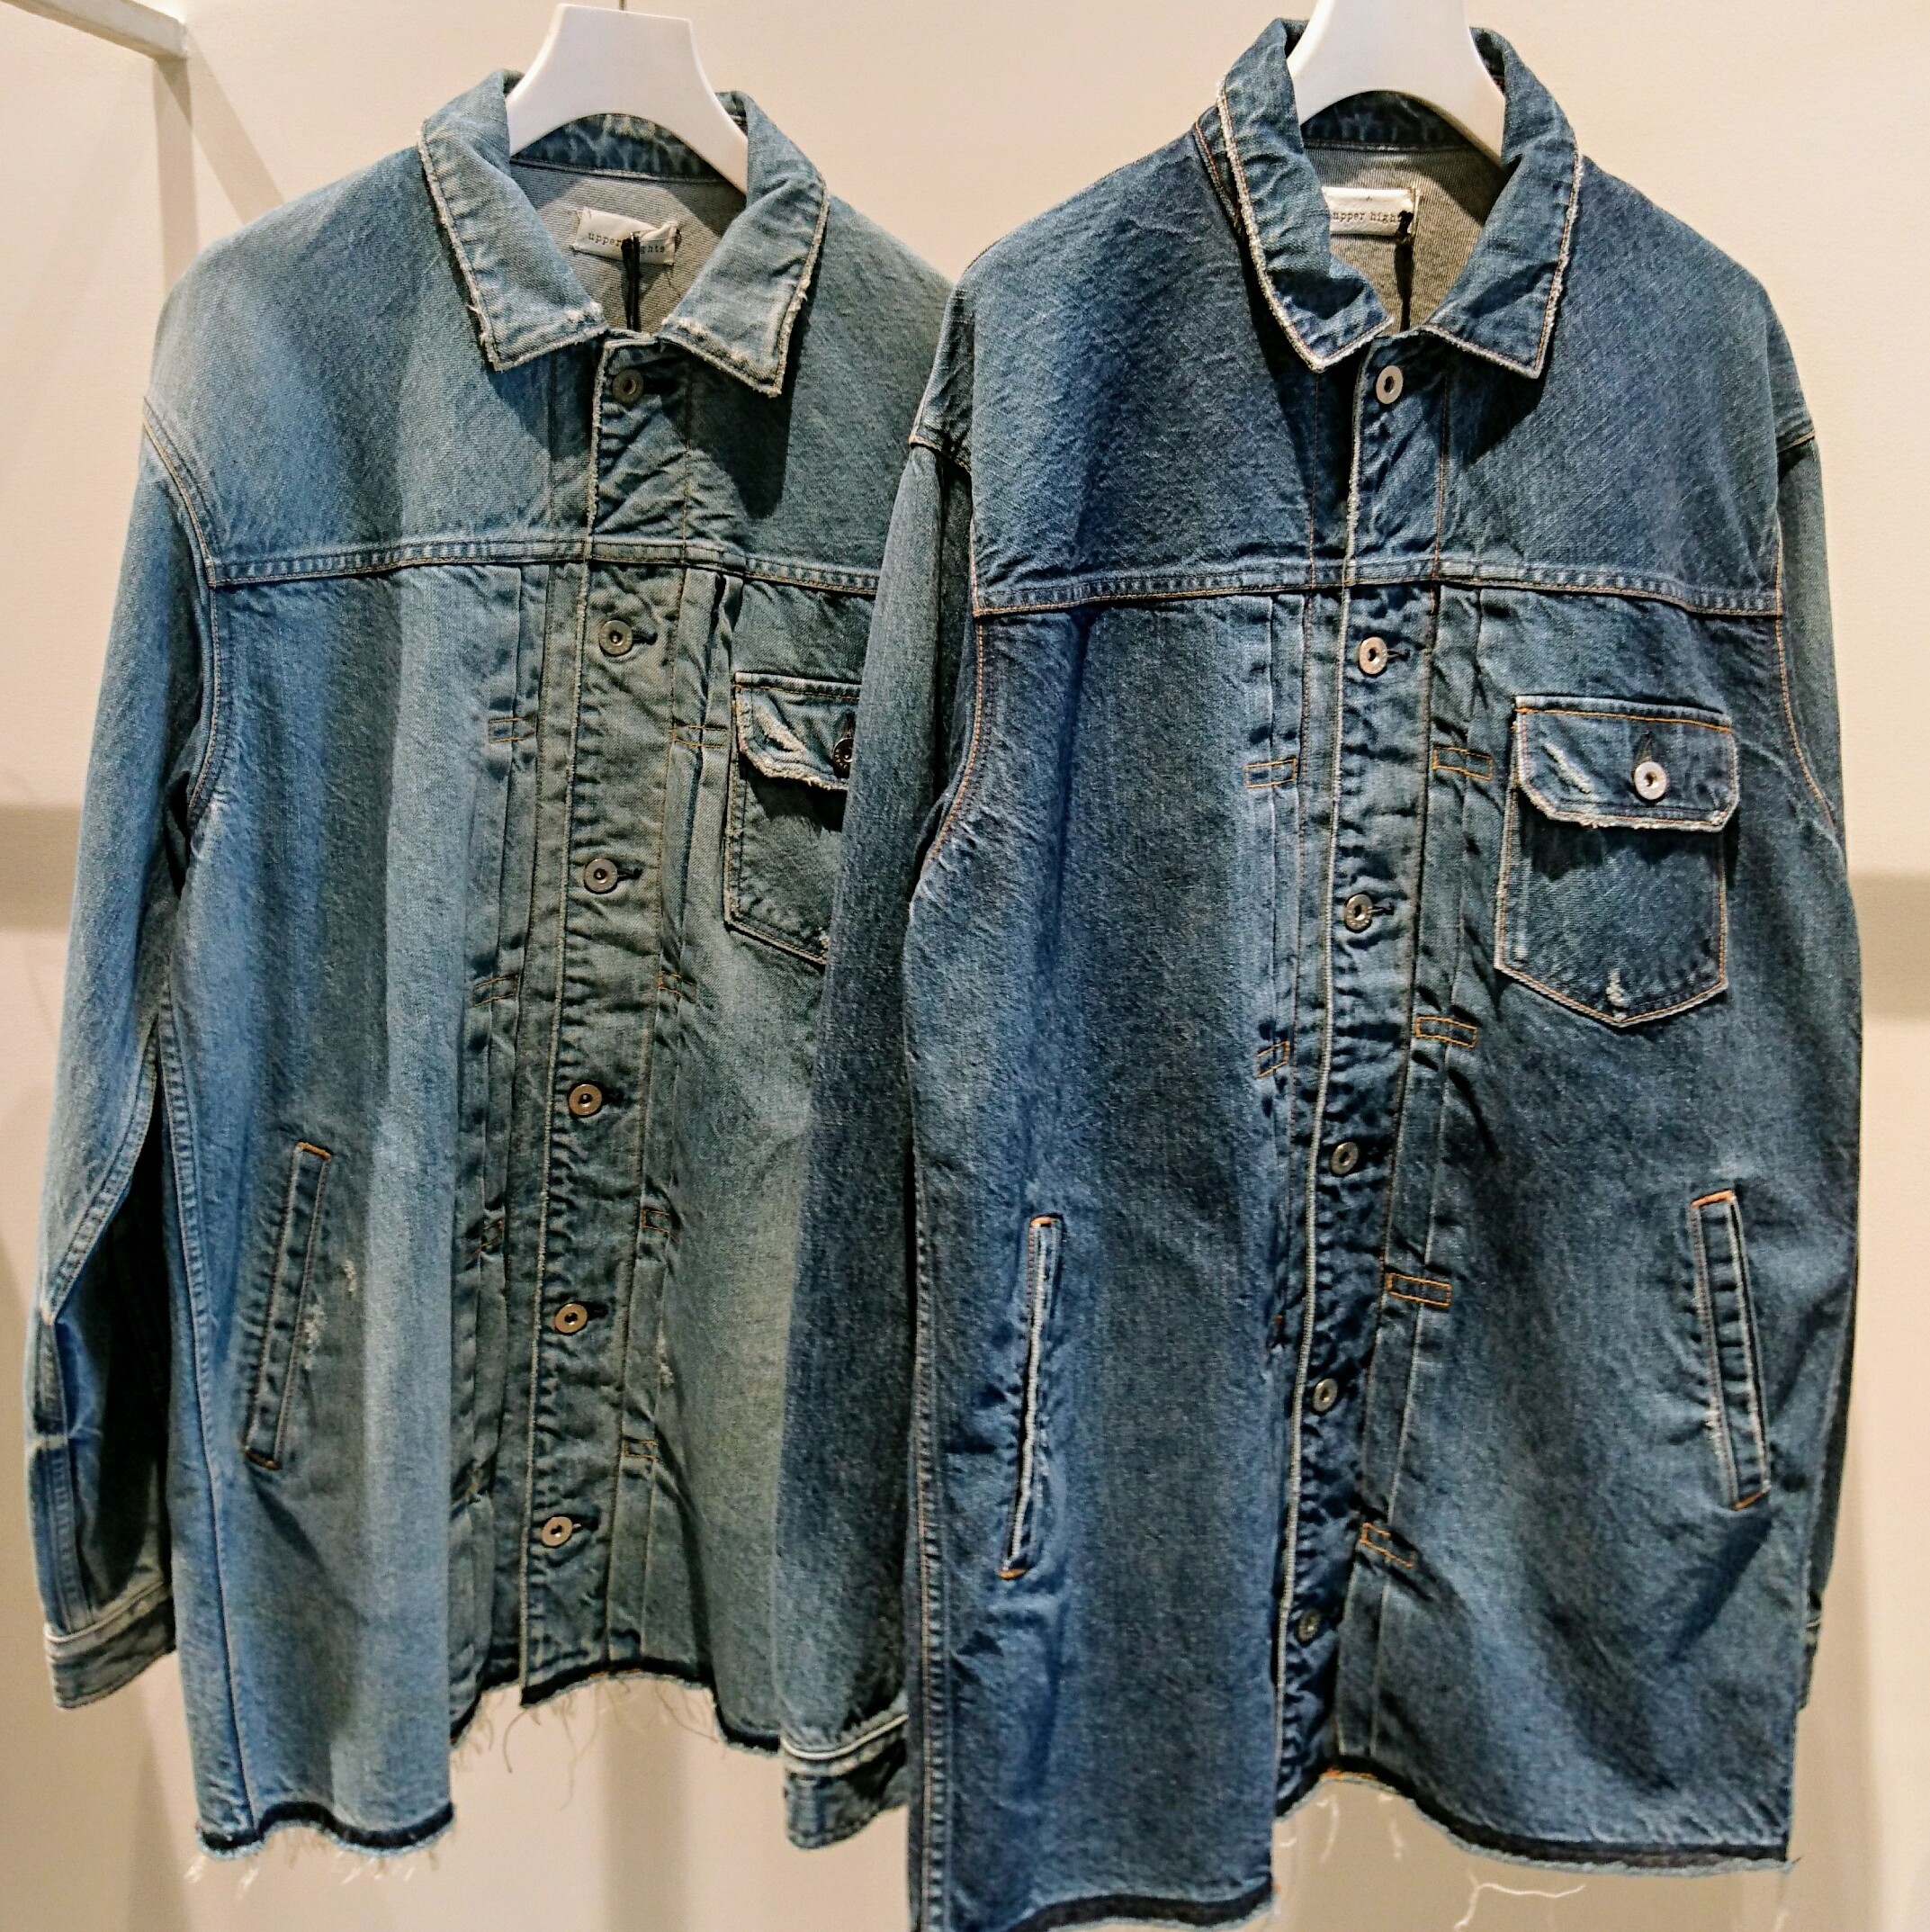 RECOMMEND:THE JEAN LONG JACKET